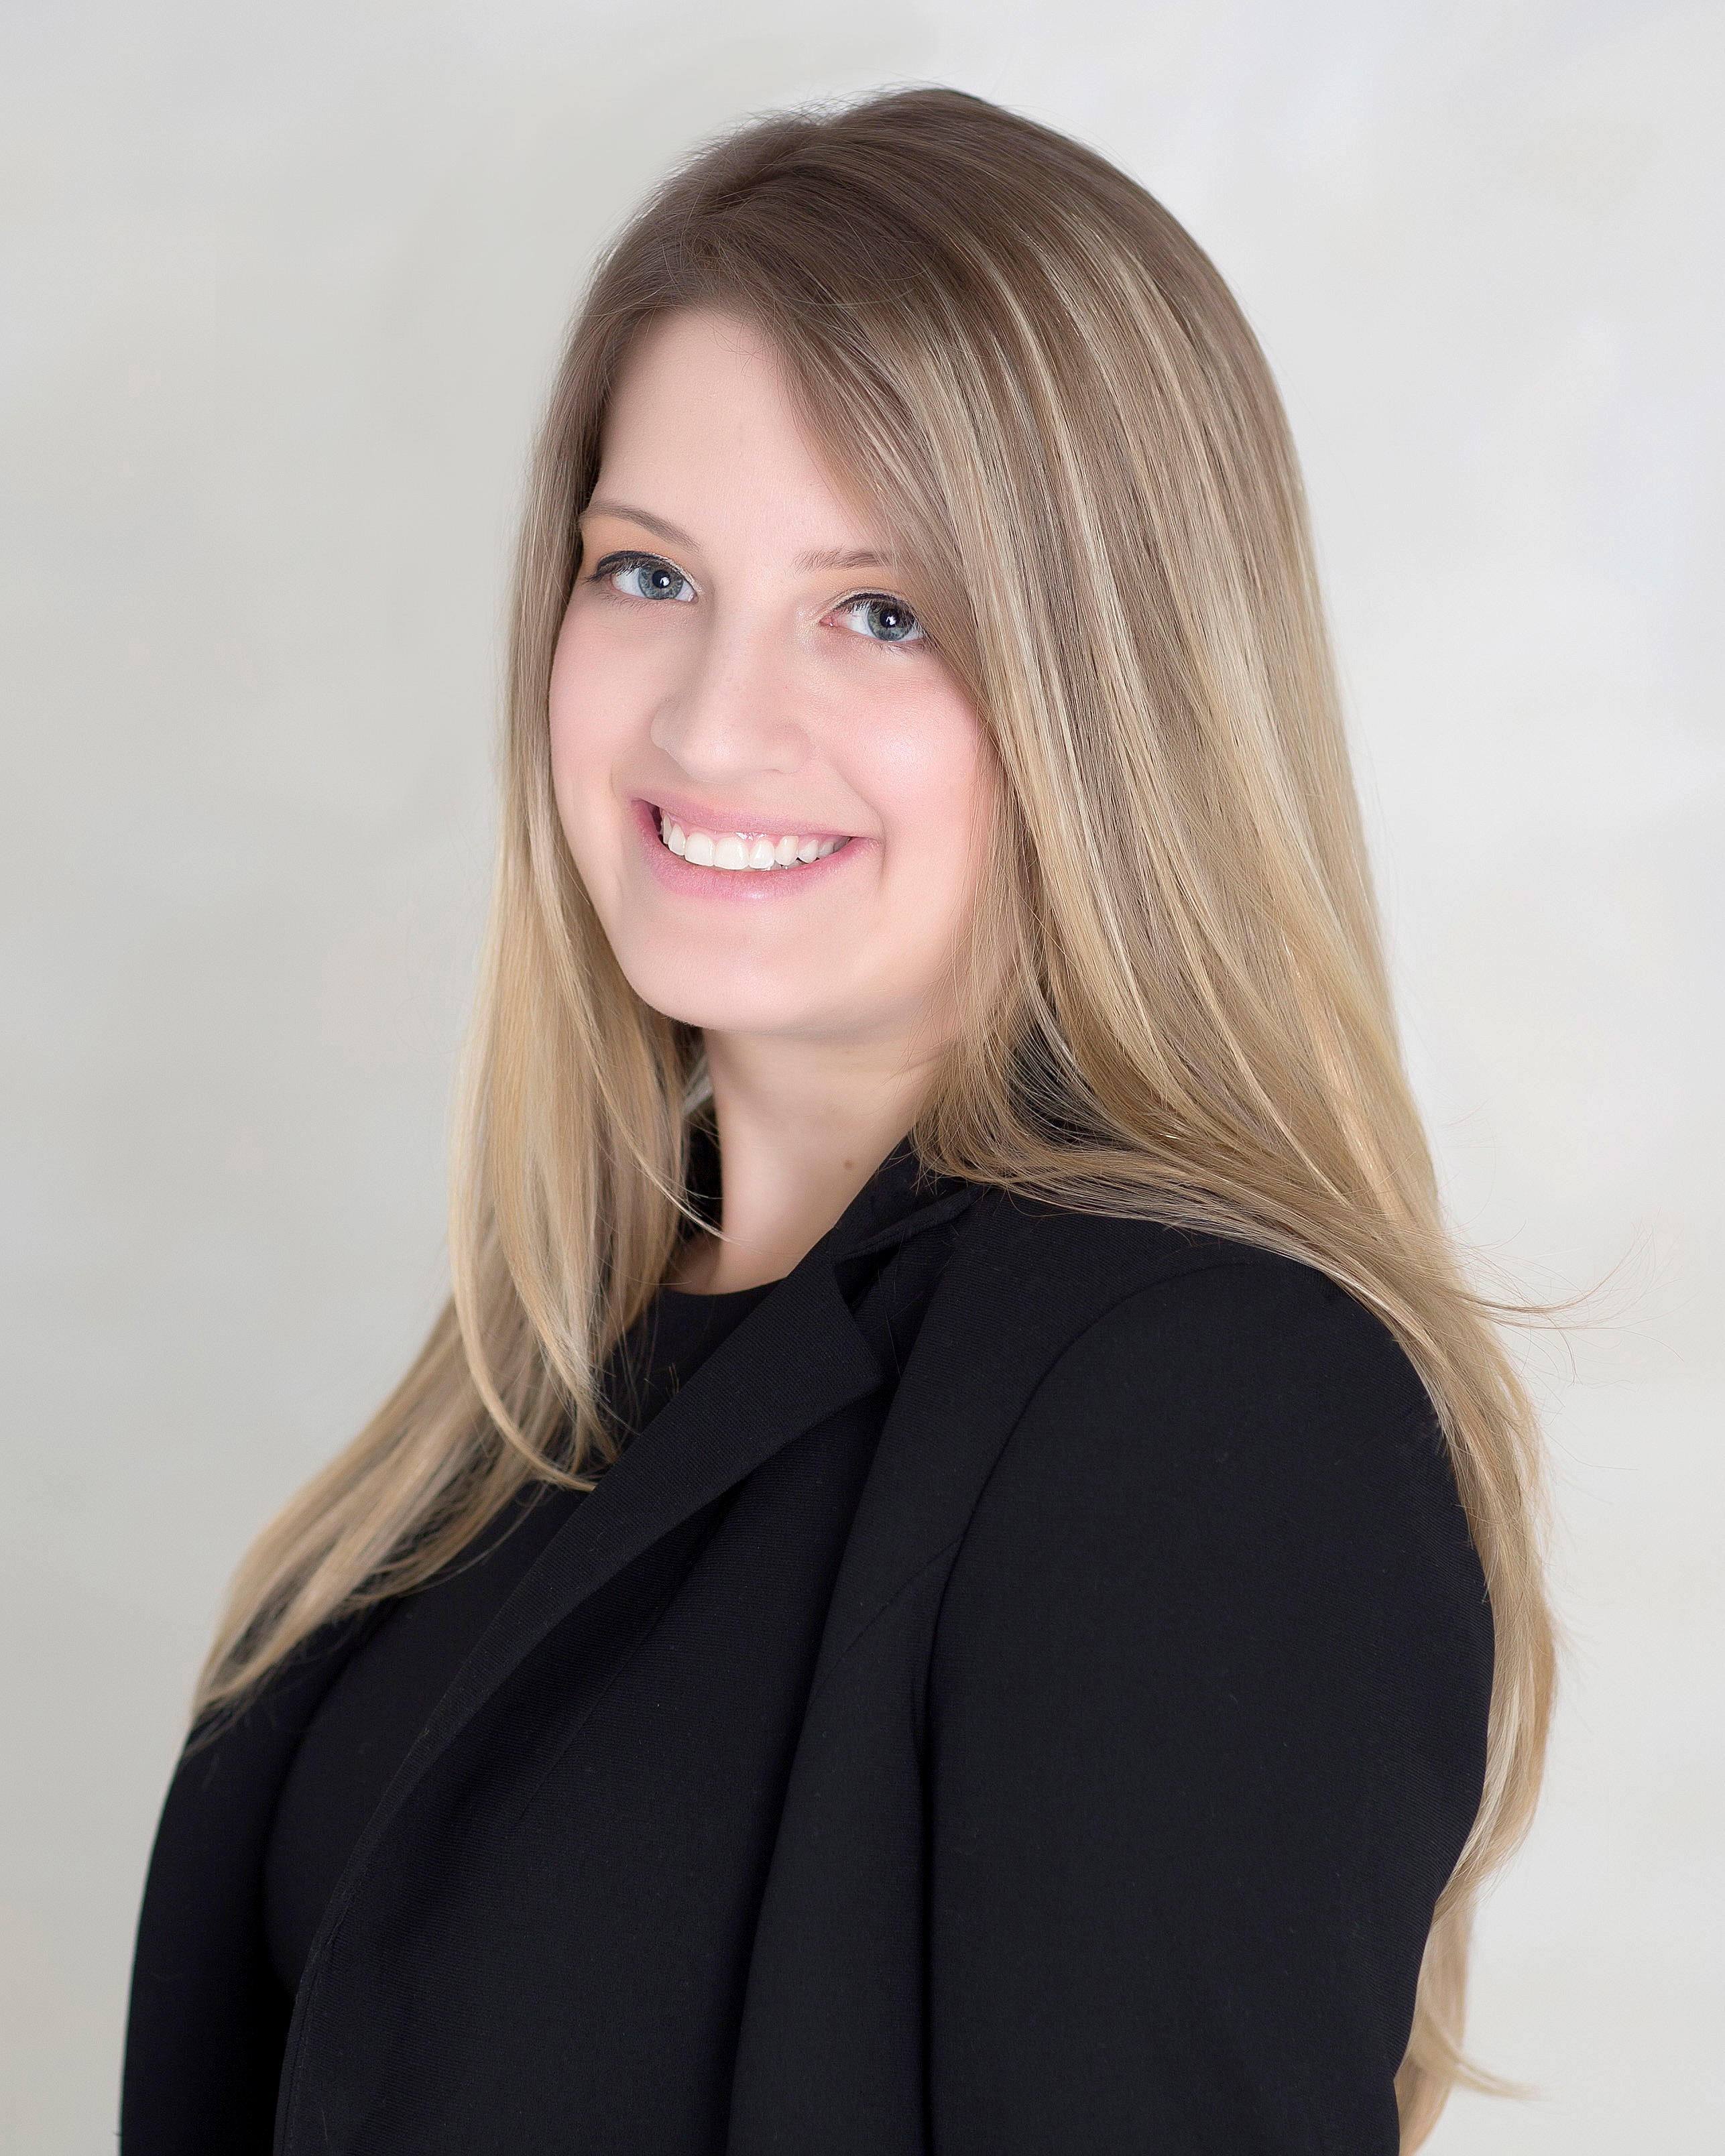 Brittni Sullivan is an attorney at Burner Law Group, P.C. She joined the firm in January 2013 as a legal intern while she was still in law school. After graduating, she was invited to join the firm wh